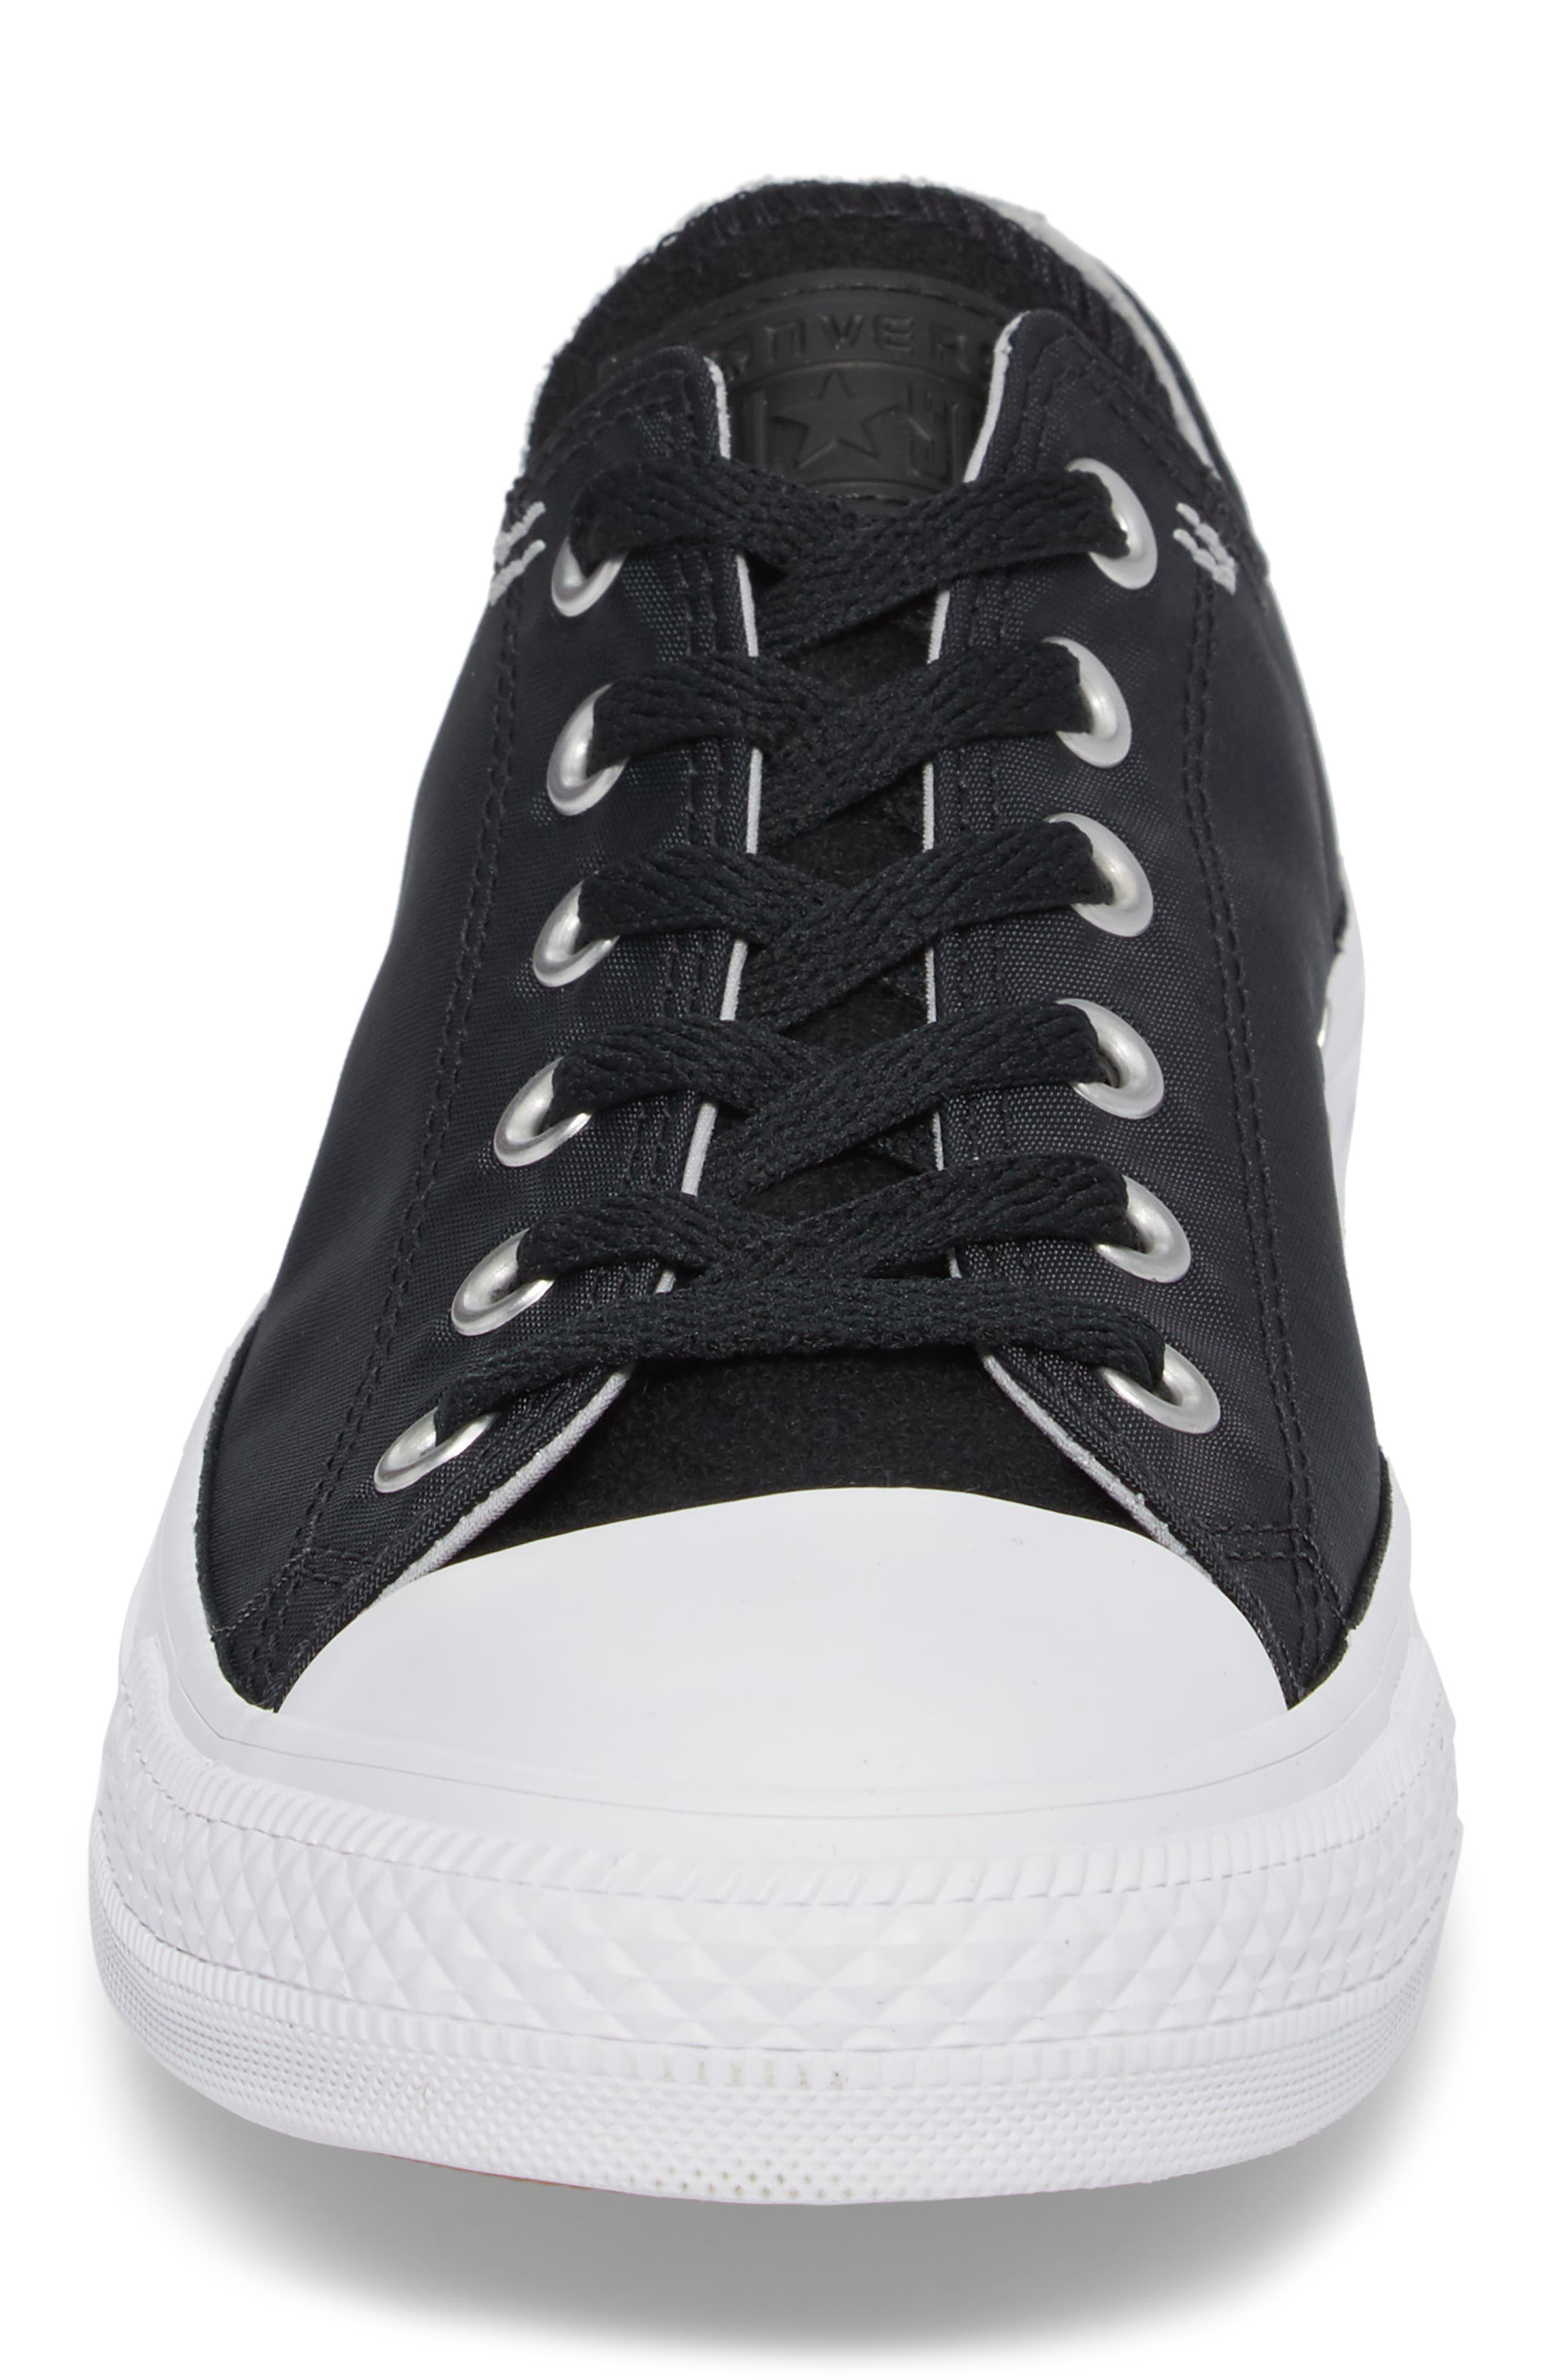 All Star<sup>®</sup> OX Low Top Sneaker,                             Alternate thumbnail 4, color,                             Black